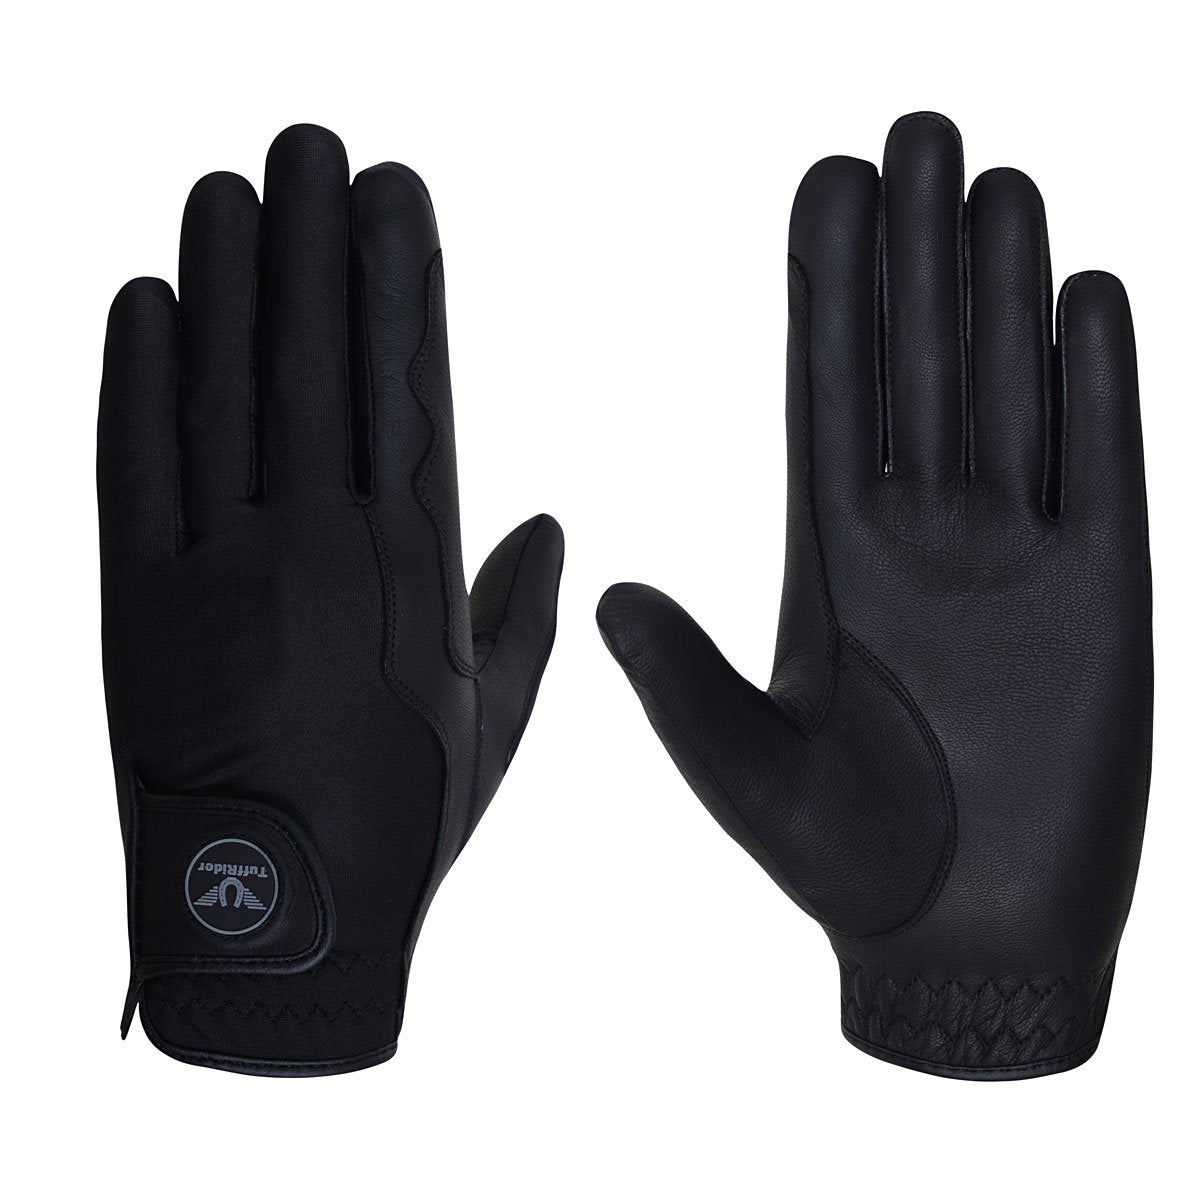 TuffRider Stretch n Grip Riding Gloves_1